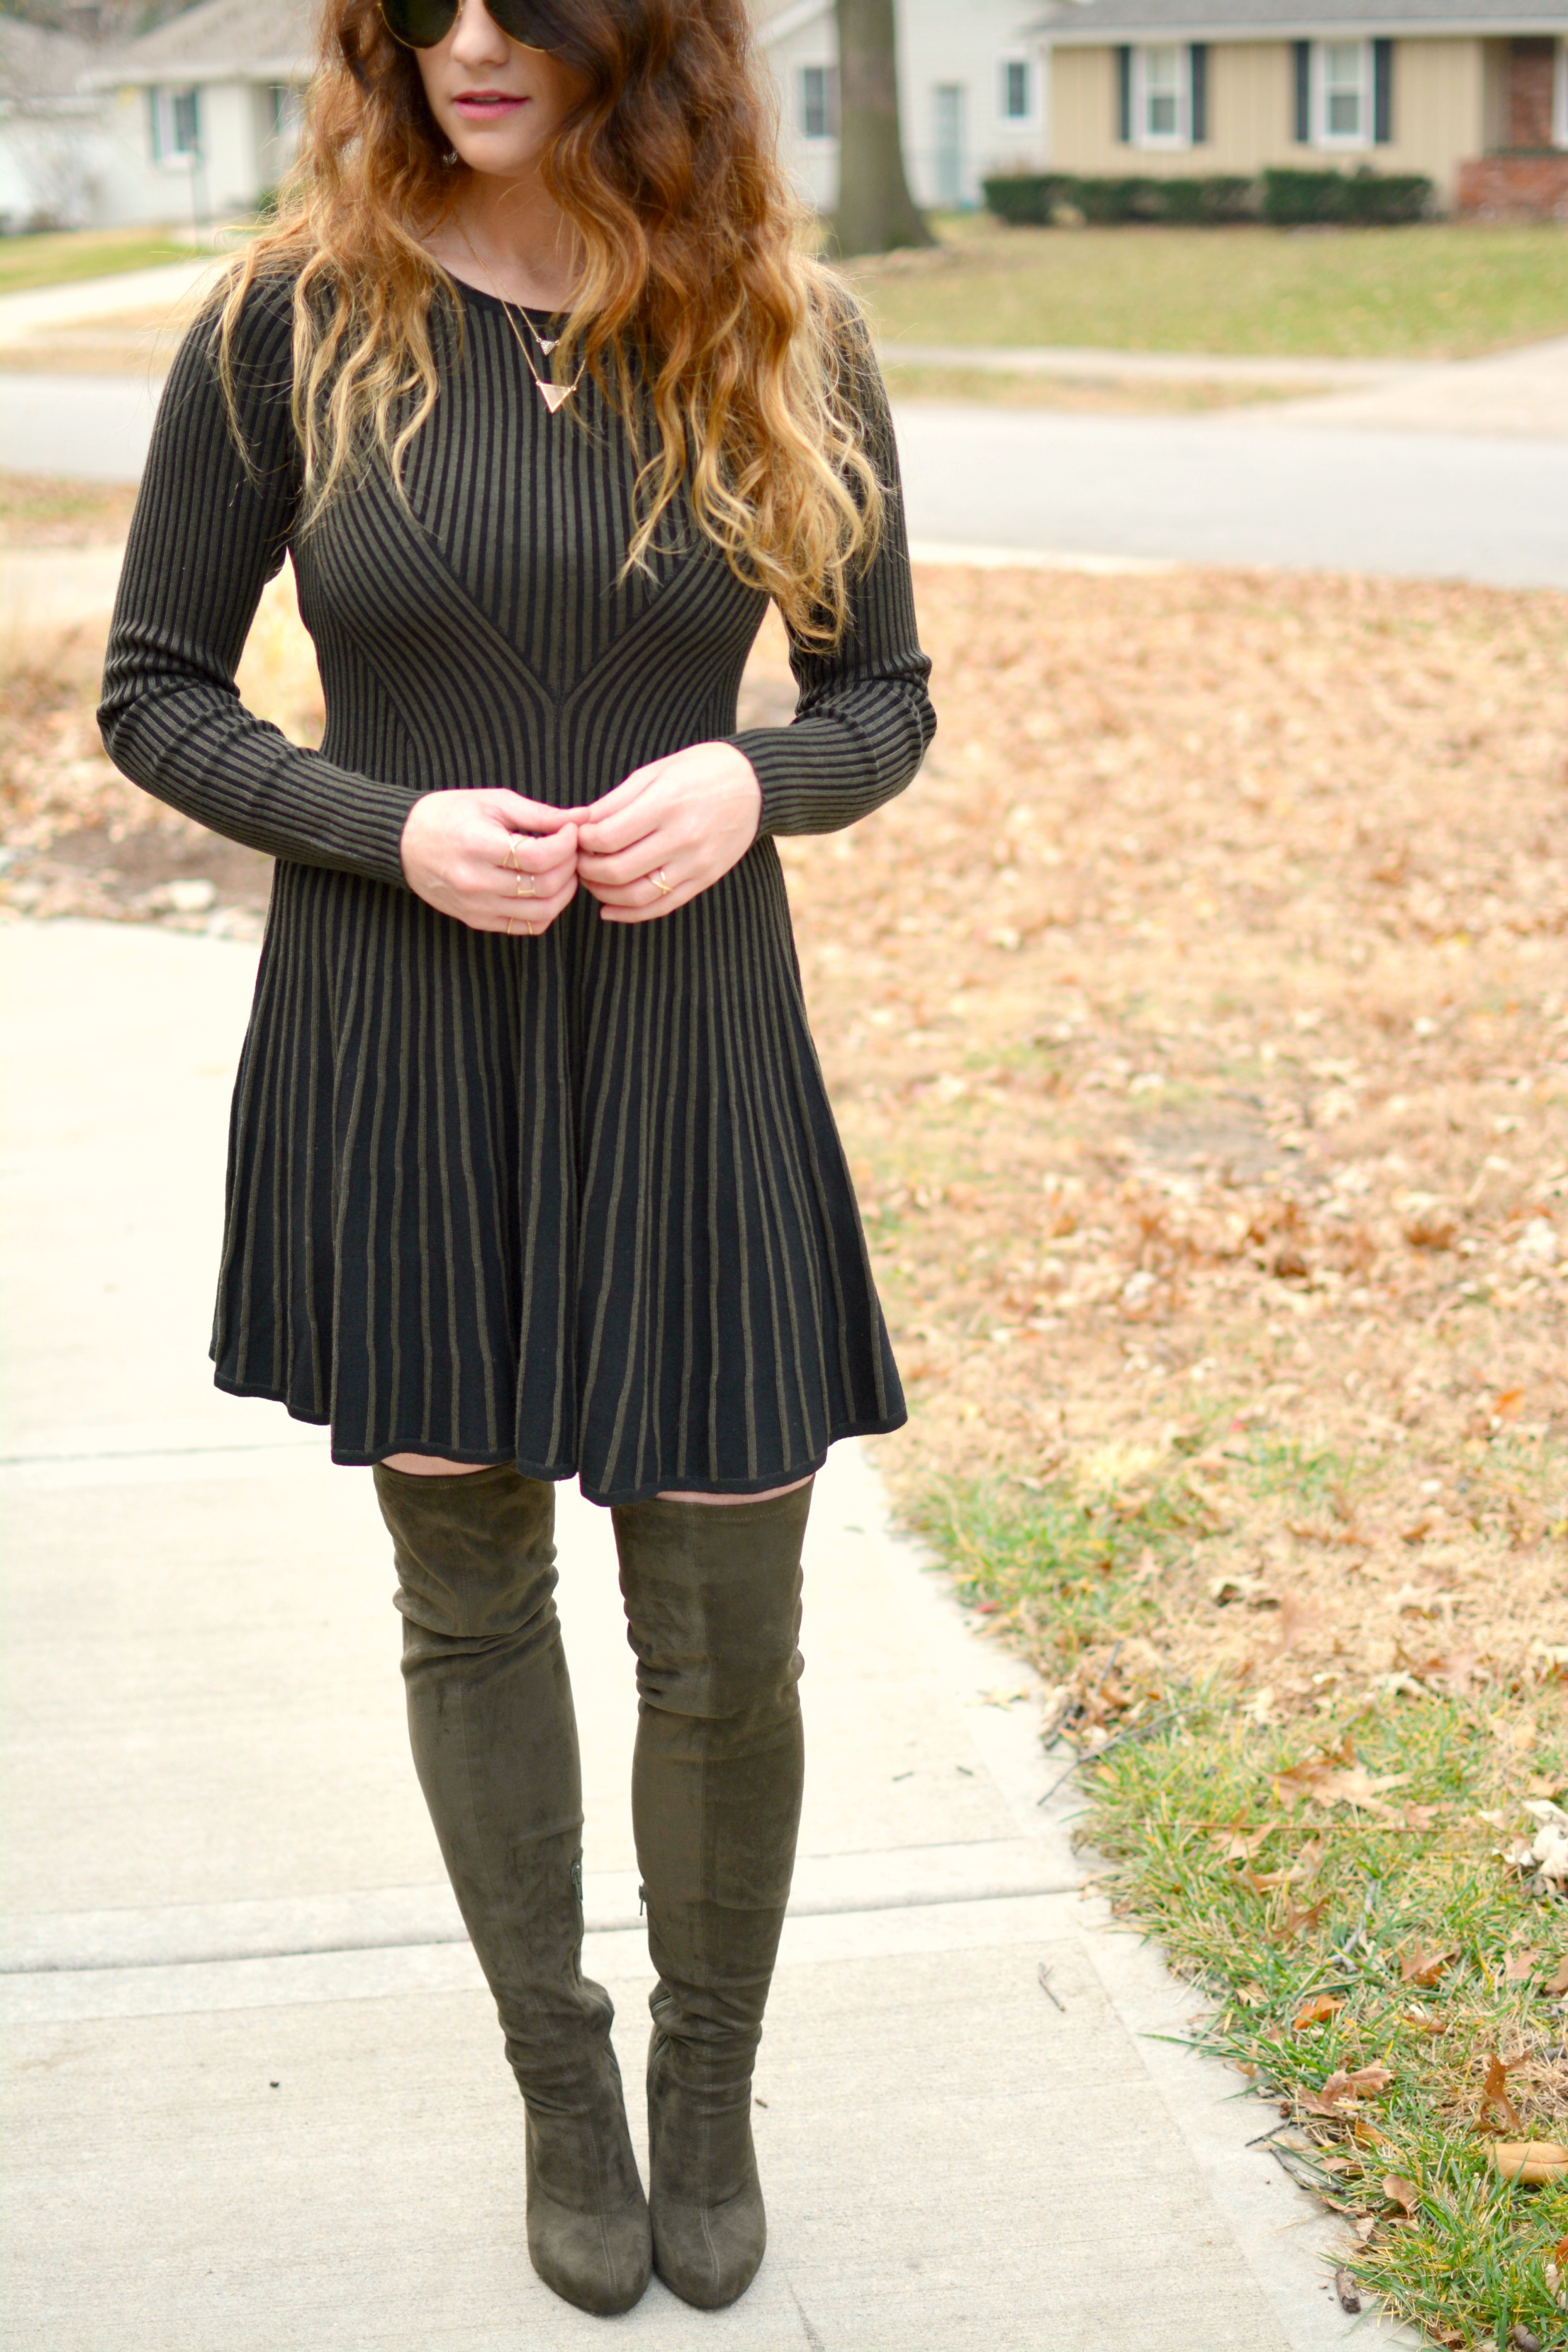 Ashley from LSR in an Express sweater dress and over-the-knee olive green boots.